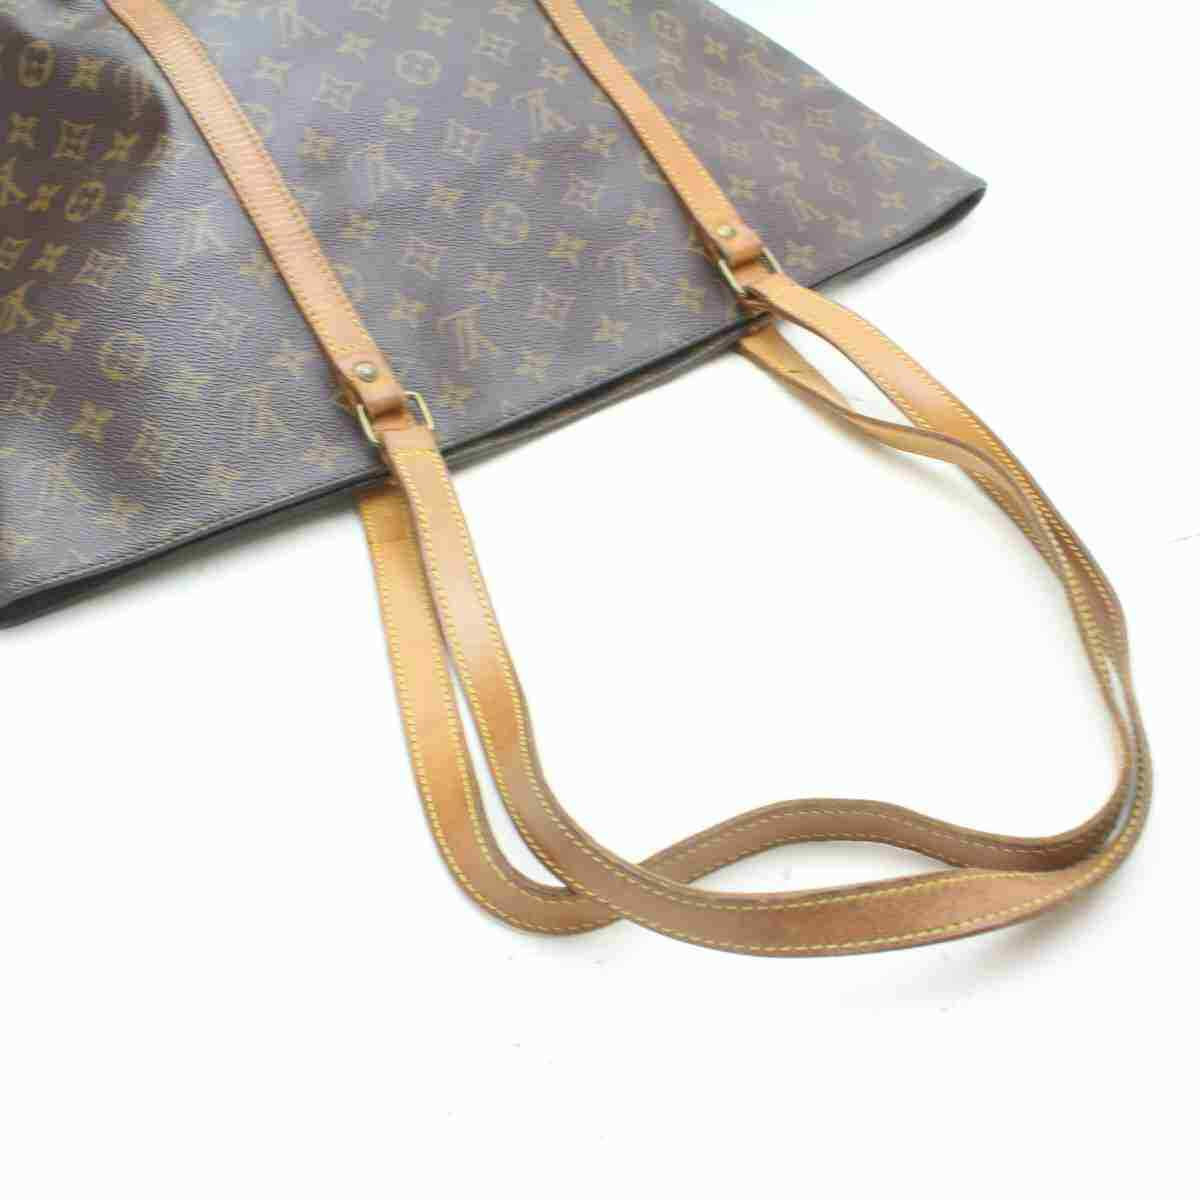 Louis Vuitton Sac Shopping M51108 Monogram Shoulder Bag 11467